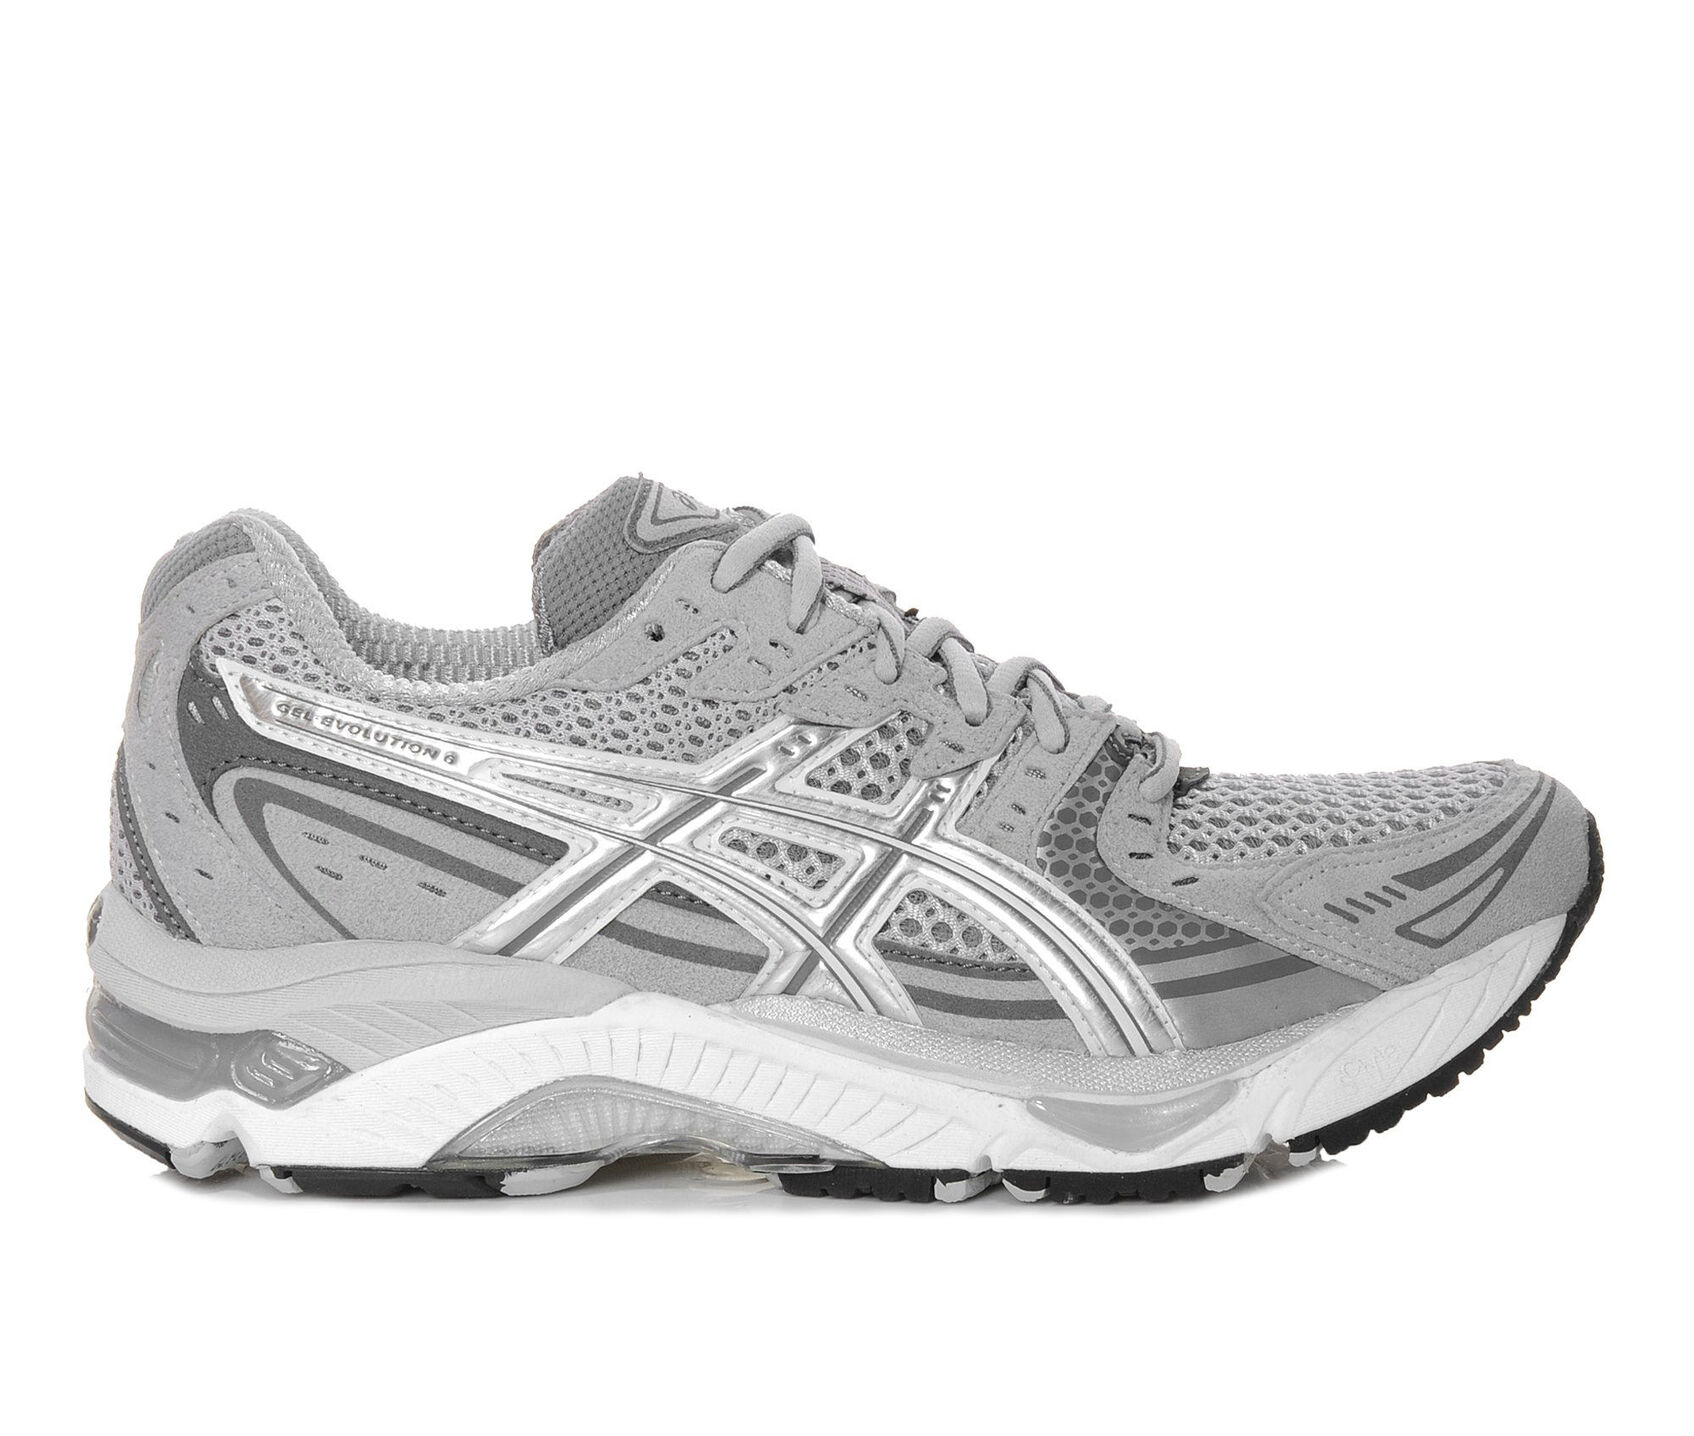 0b1c8113ba1 Women s ASICS Gel Evolution 6 Running Shoes